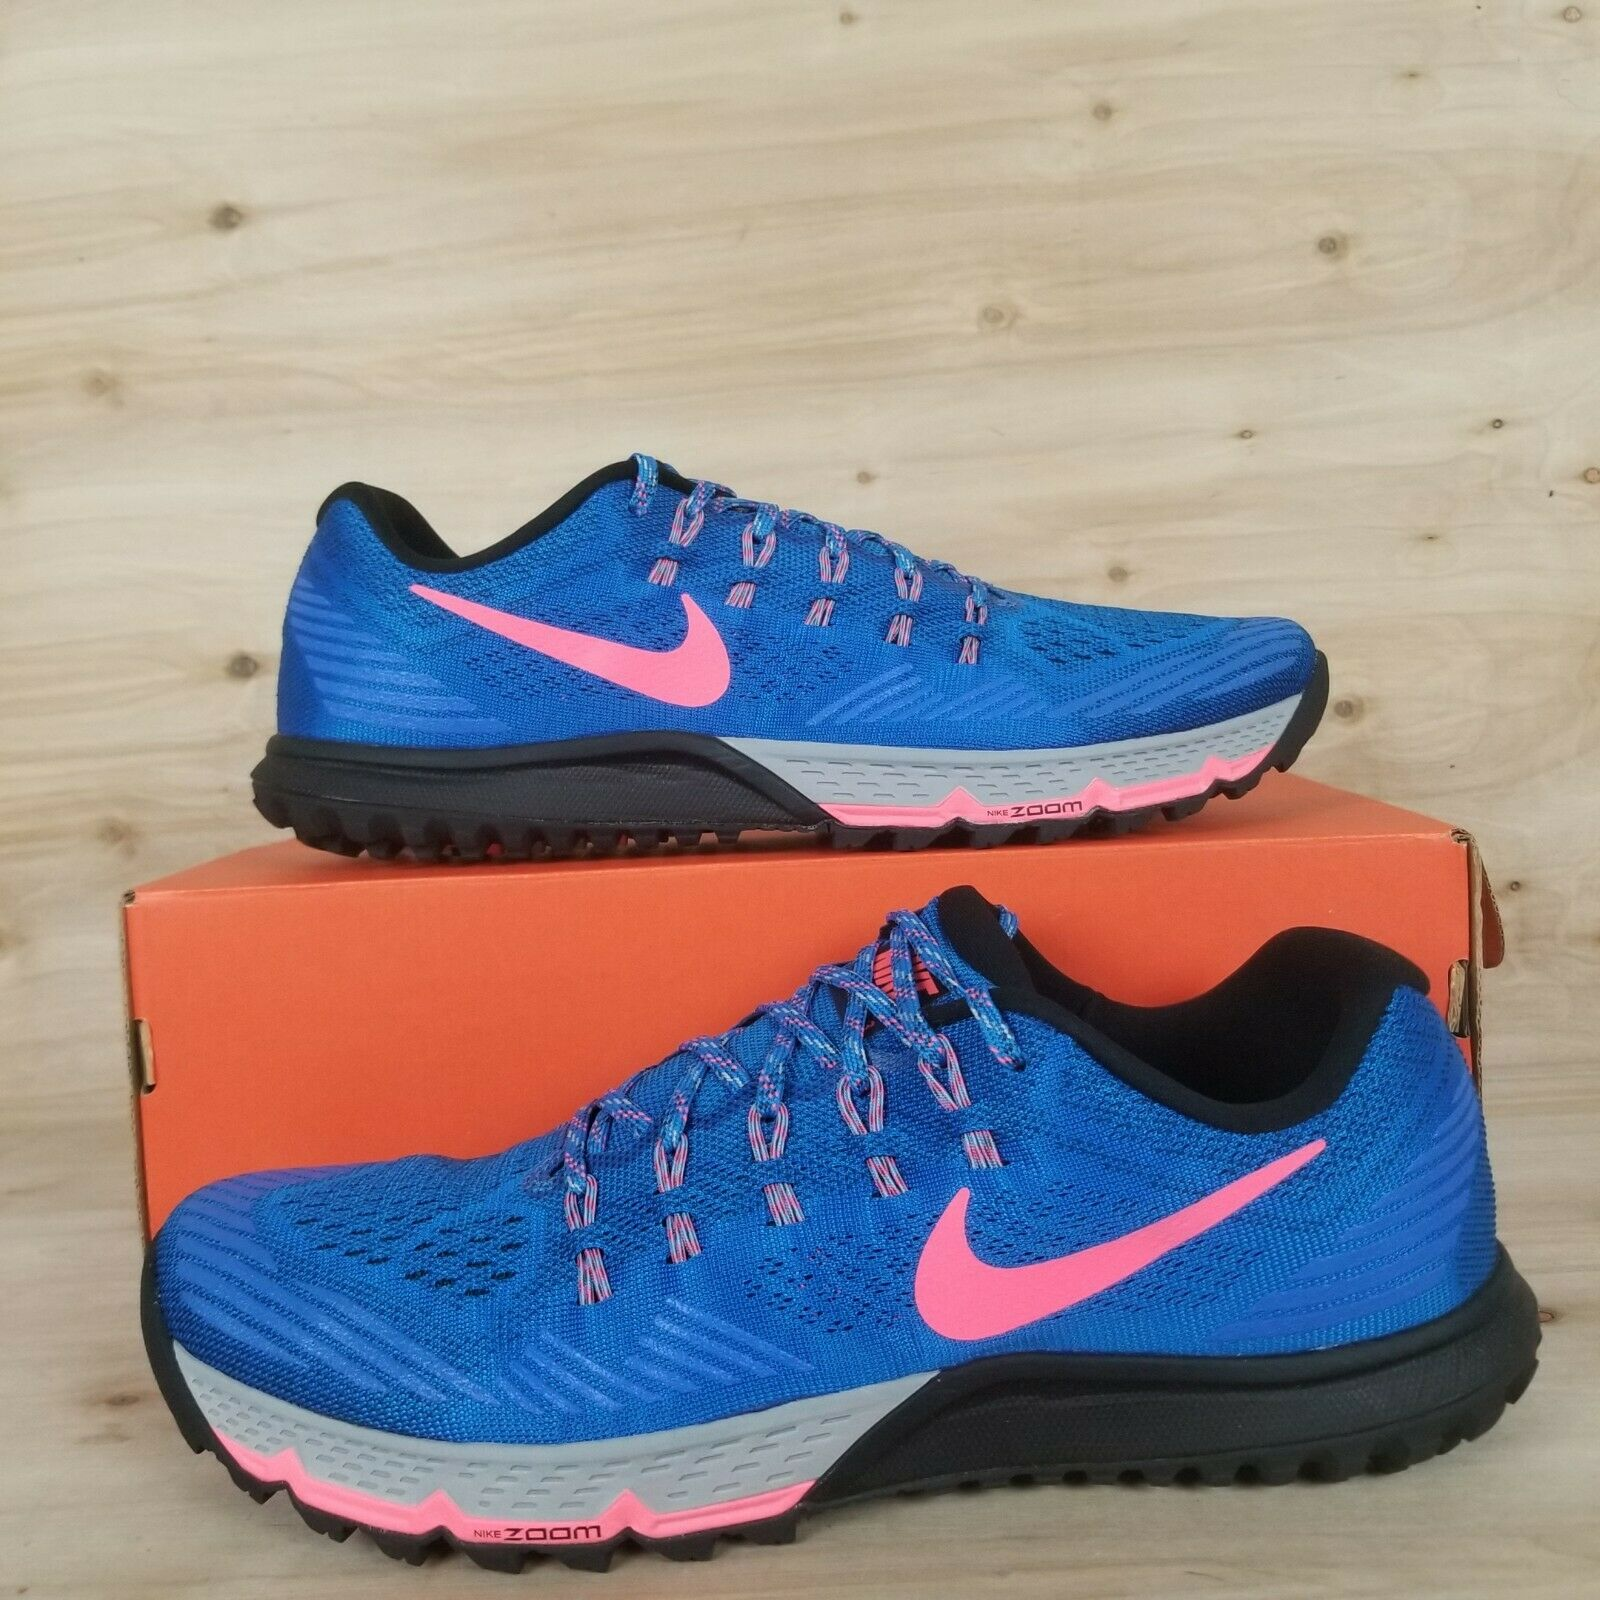 NIKE AIR ZOOM TERRA KIGER 3 TRAIL RUNNING SHOES BLUEHOT PUNCH MEN'S SZ:10.5 13